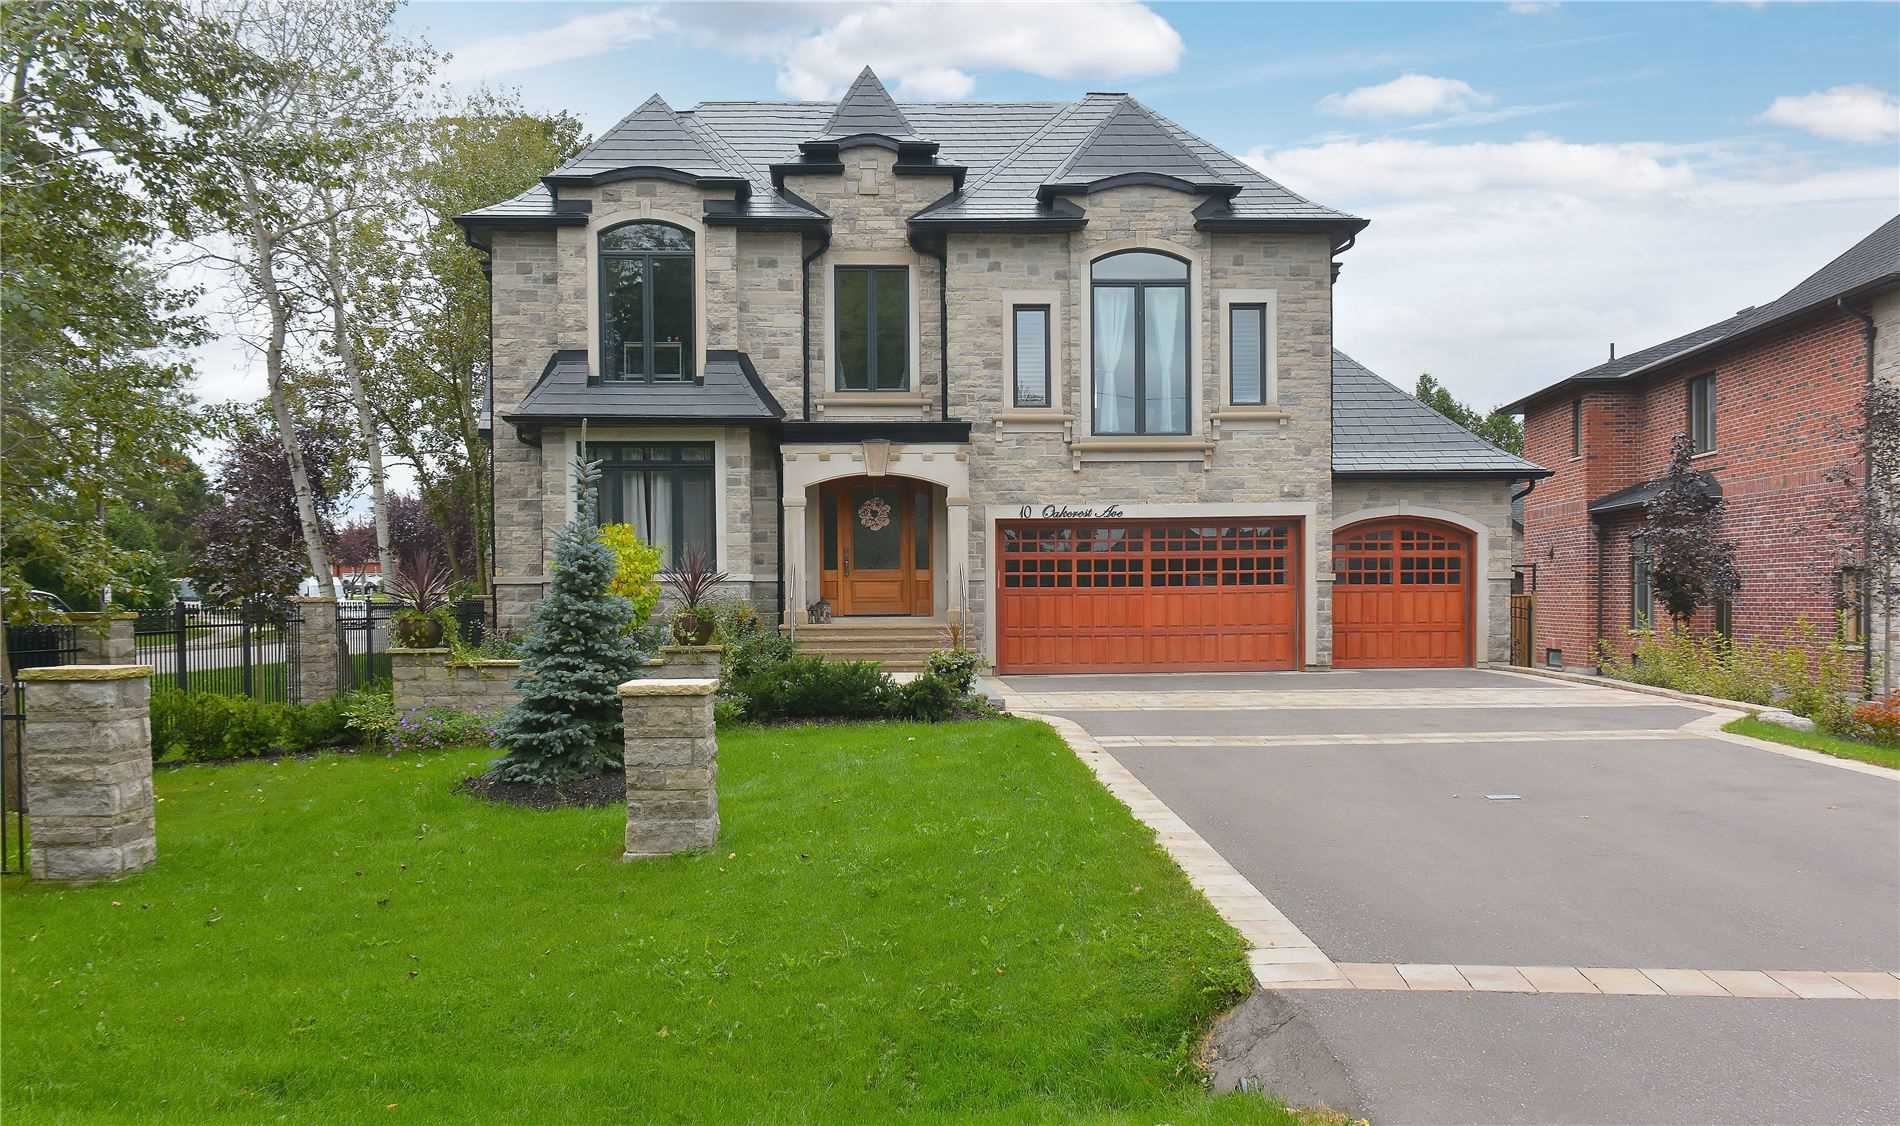 10 Oakcrest Ave, Markham, Ontario L3R 2B8, 4 Bedrooms Bedrooms, 10 Rooms Rooms,7 BathroomsBathrooms,Detached,For Sale,Oakcrest,N4715698